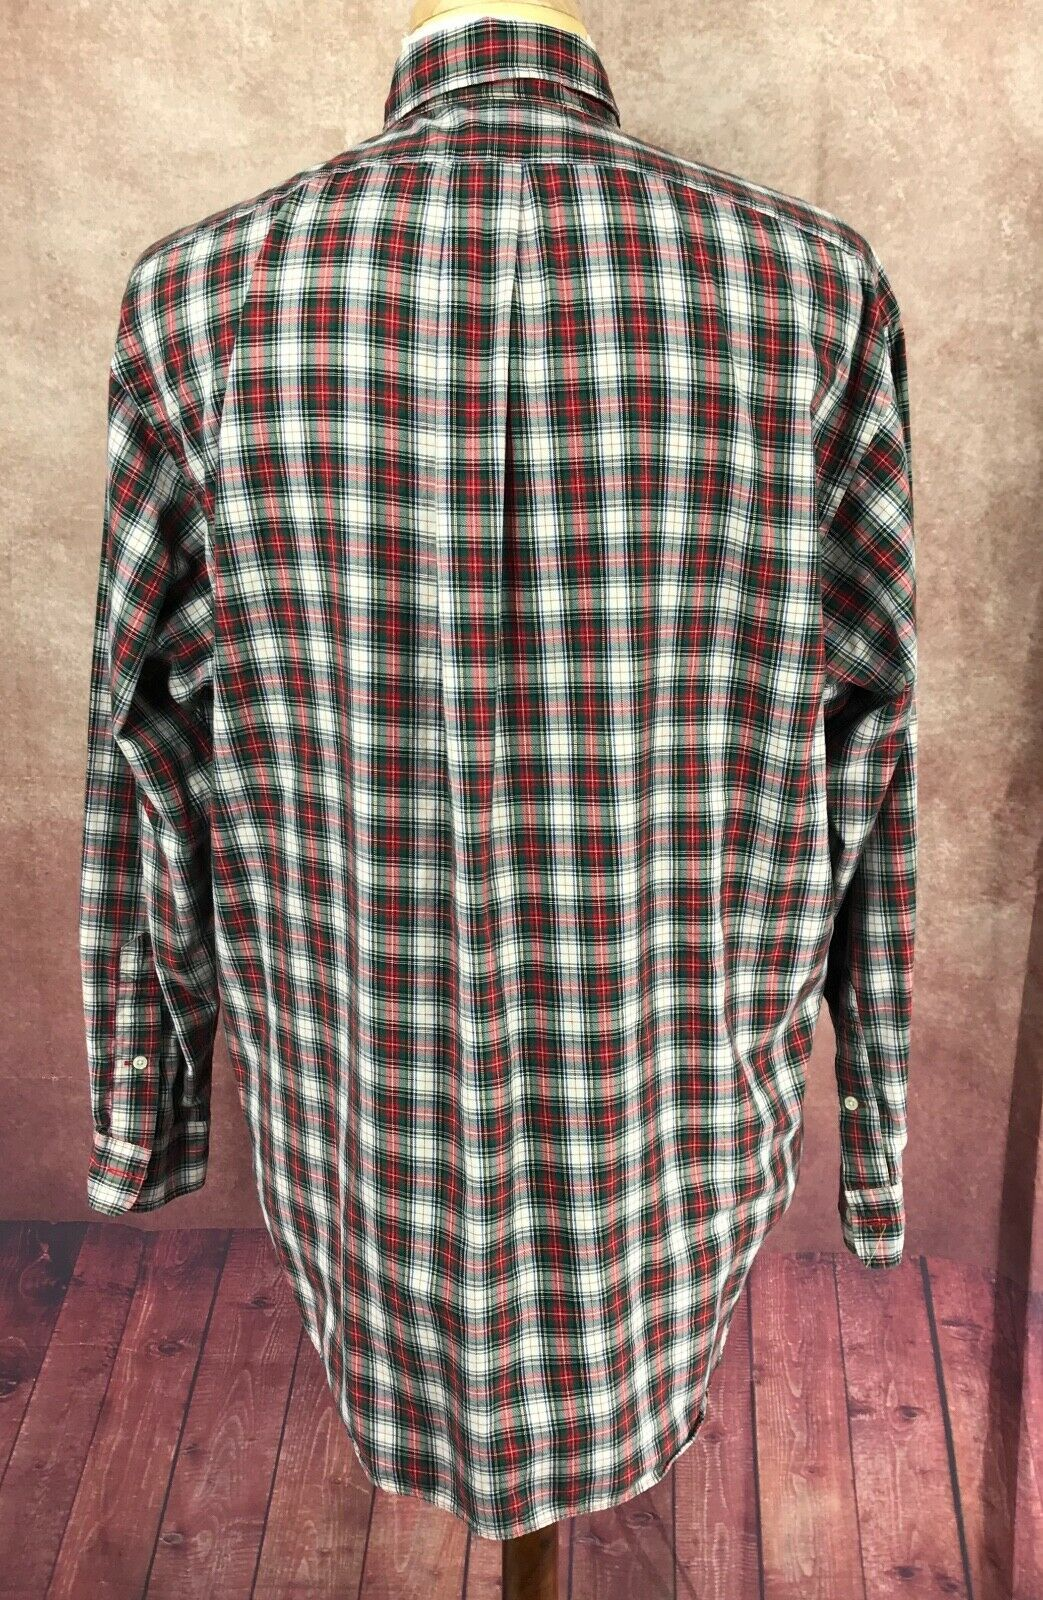 Ralph Lauren Polo Button Down Long Sleeve Cotton Red Check Shirt Men's L/XL